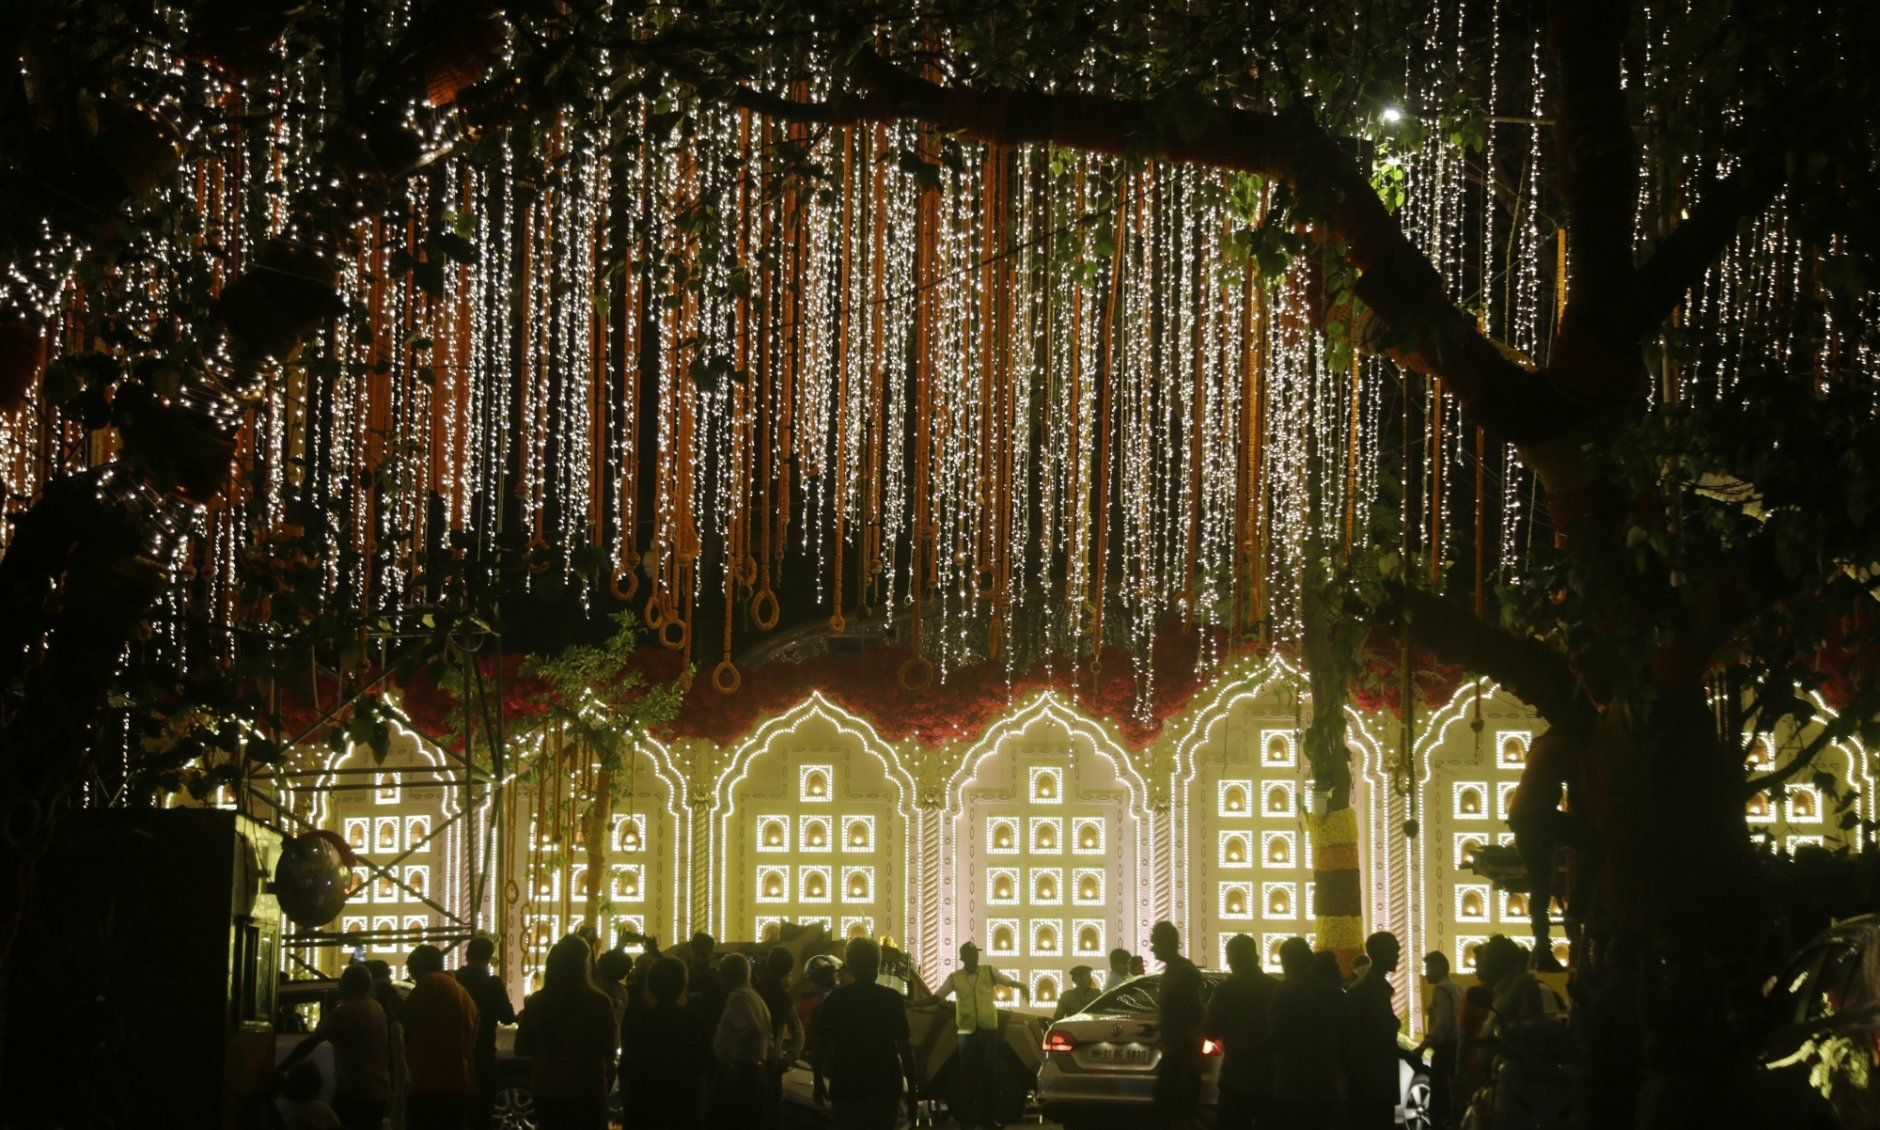 A street is lit-up outside the house of Reliance Industries Chairman Mukesh Ambani ahead of the wedding of his daughter Isha in Mumbai, India, Tuesday, Dec. 11, 2018. Isha Ambani, the daughter of India's richest mogul, is to wed Anand Piramal, the son of one of India's biggest industrialists, at the Ambani estate in Mumbai on Wednesday, capping off an extravagant days-long event. (AP Photo/Rajanish Kakade)